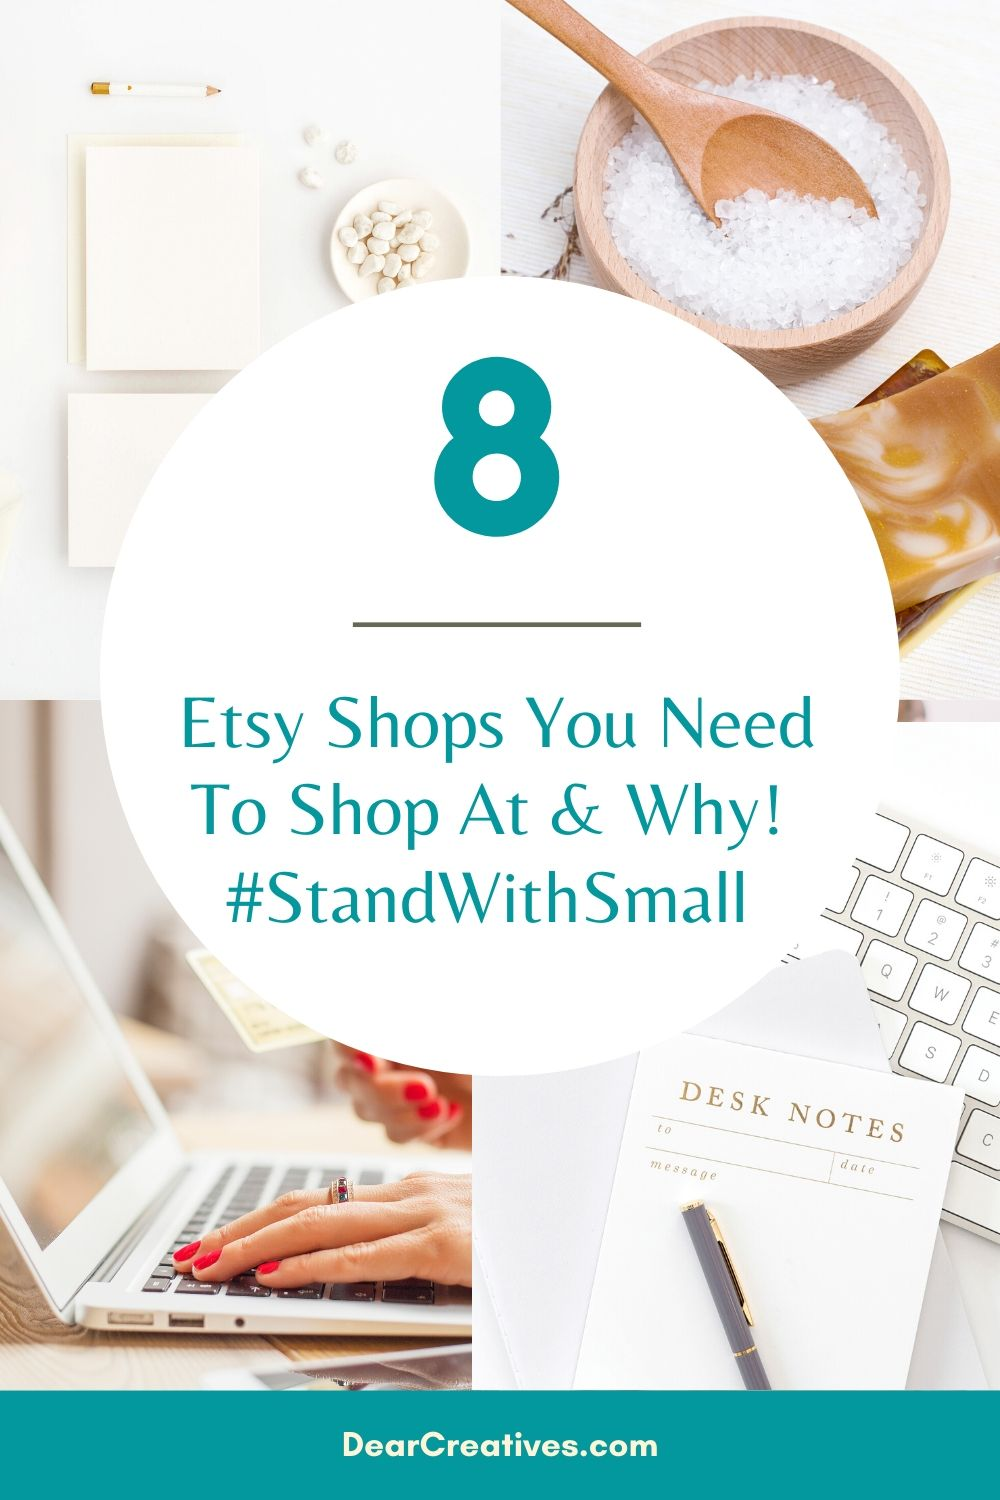 8 Etsy Shops We Love #StandWithSmall